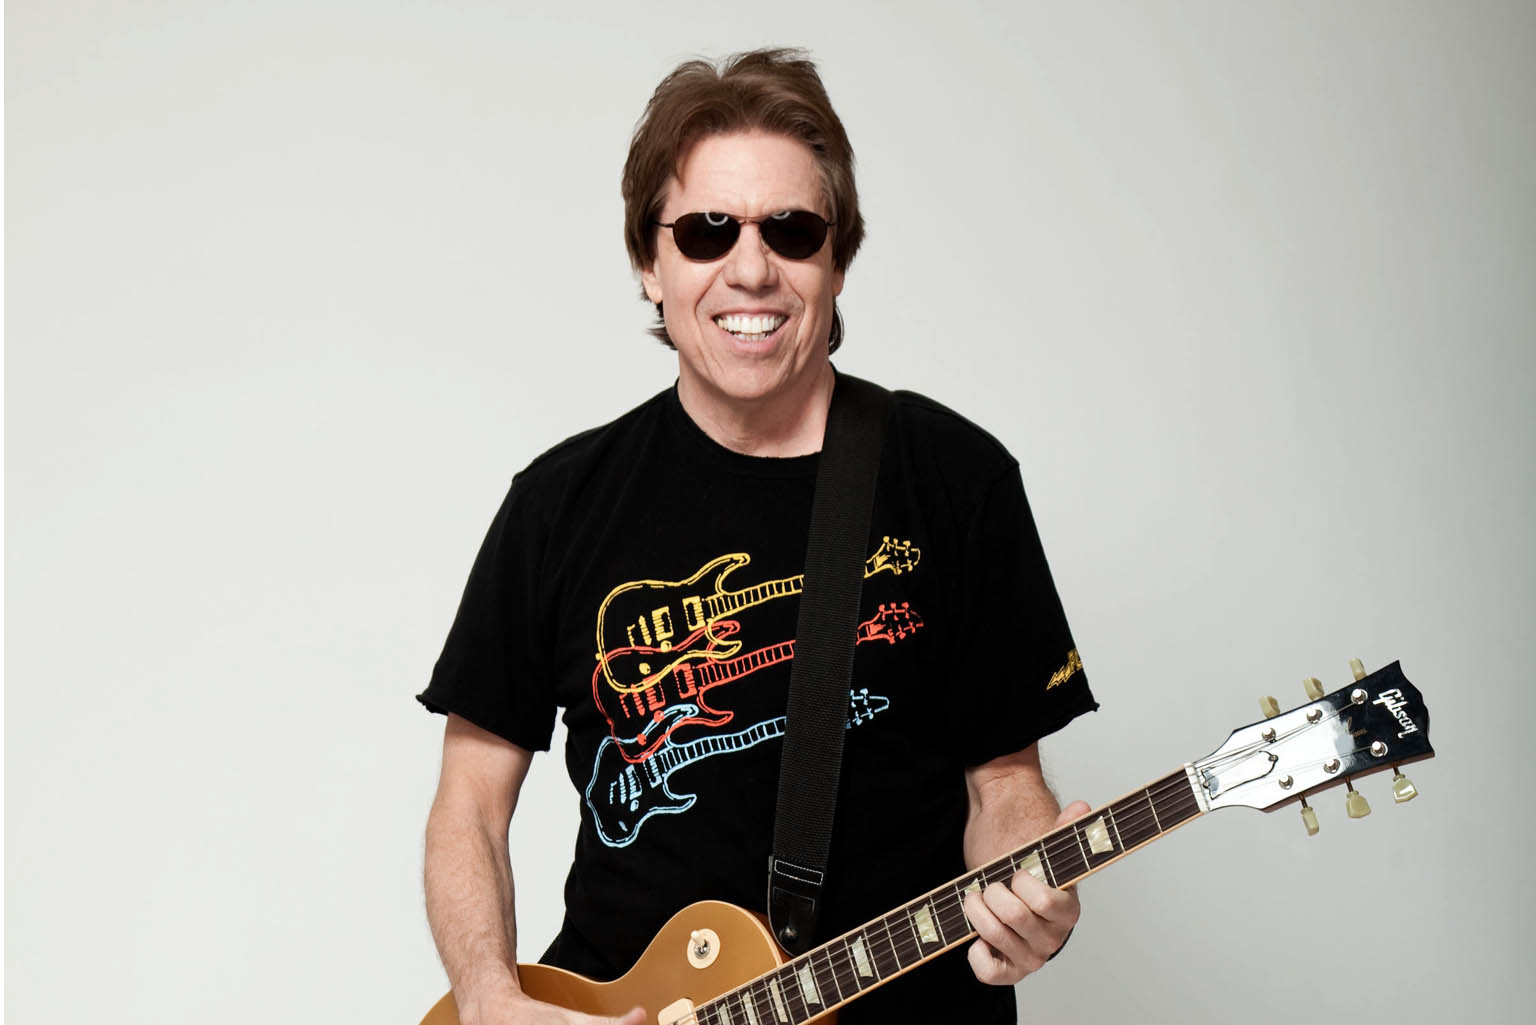 We will be supporting George Thorogood & The Destroyers for dates on their upcoming Canadian Tour!!!